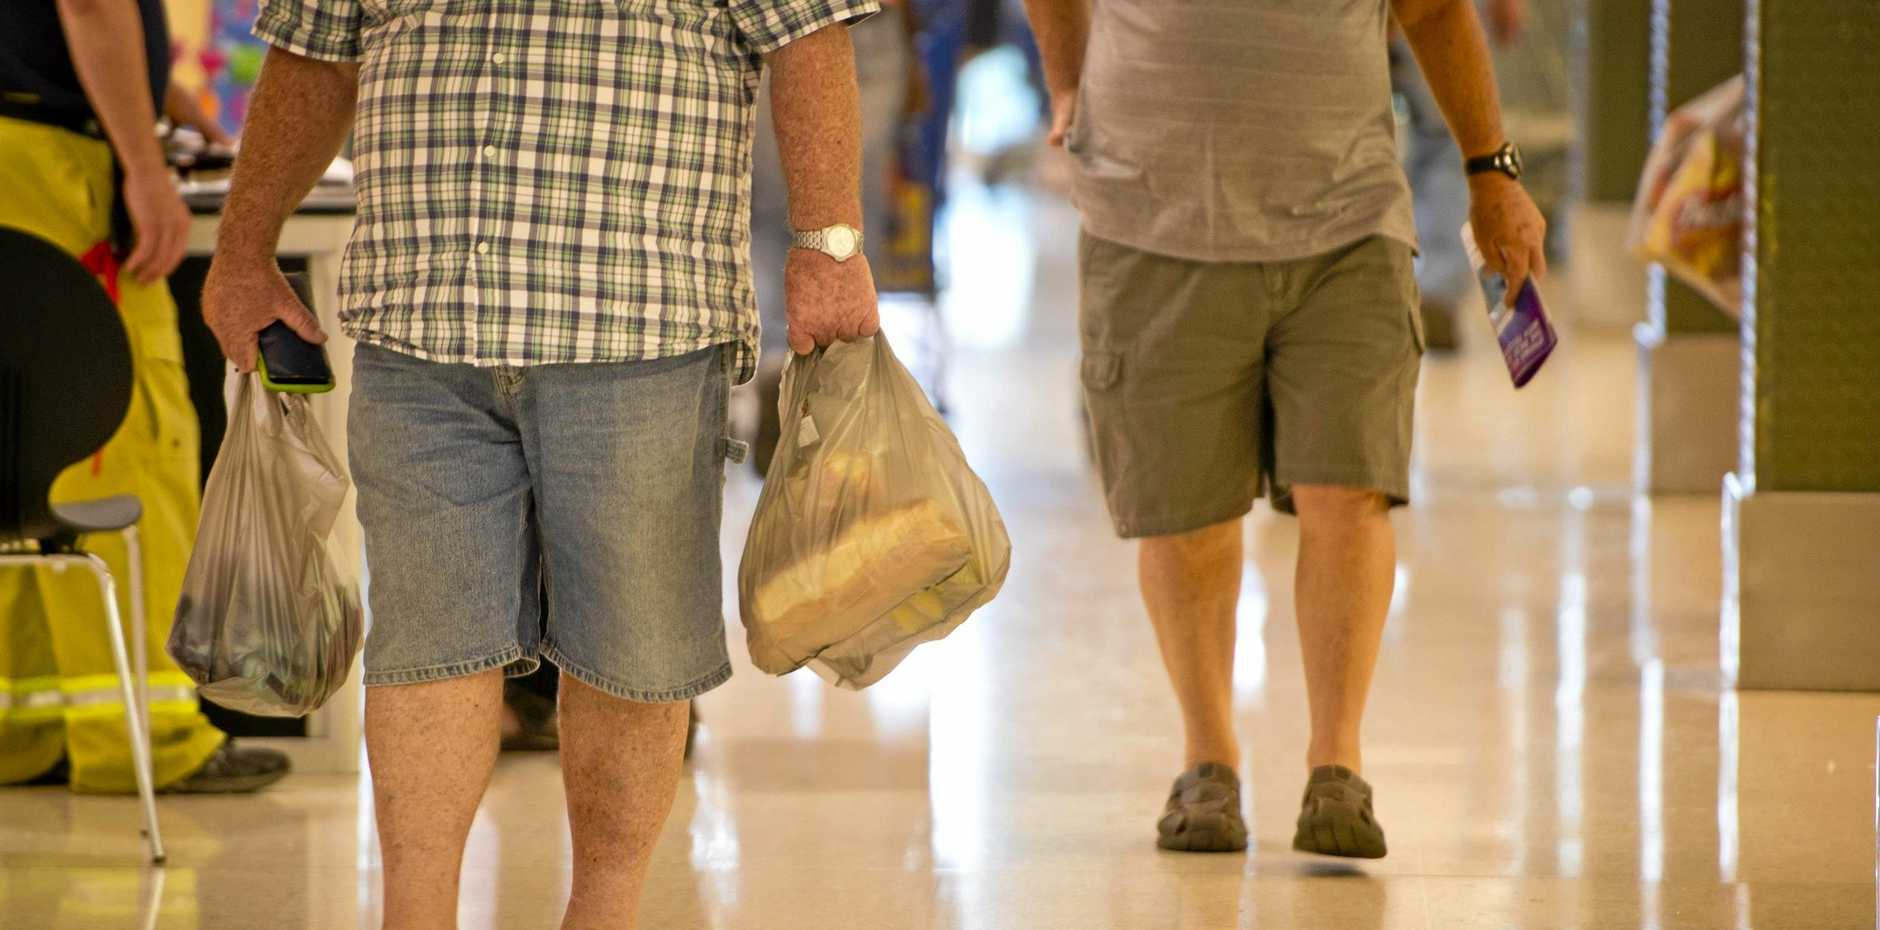 About 20,000 shoppers visited Caneland Central on Boxing Day, but it was a different story in Mackay city centre.